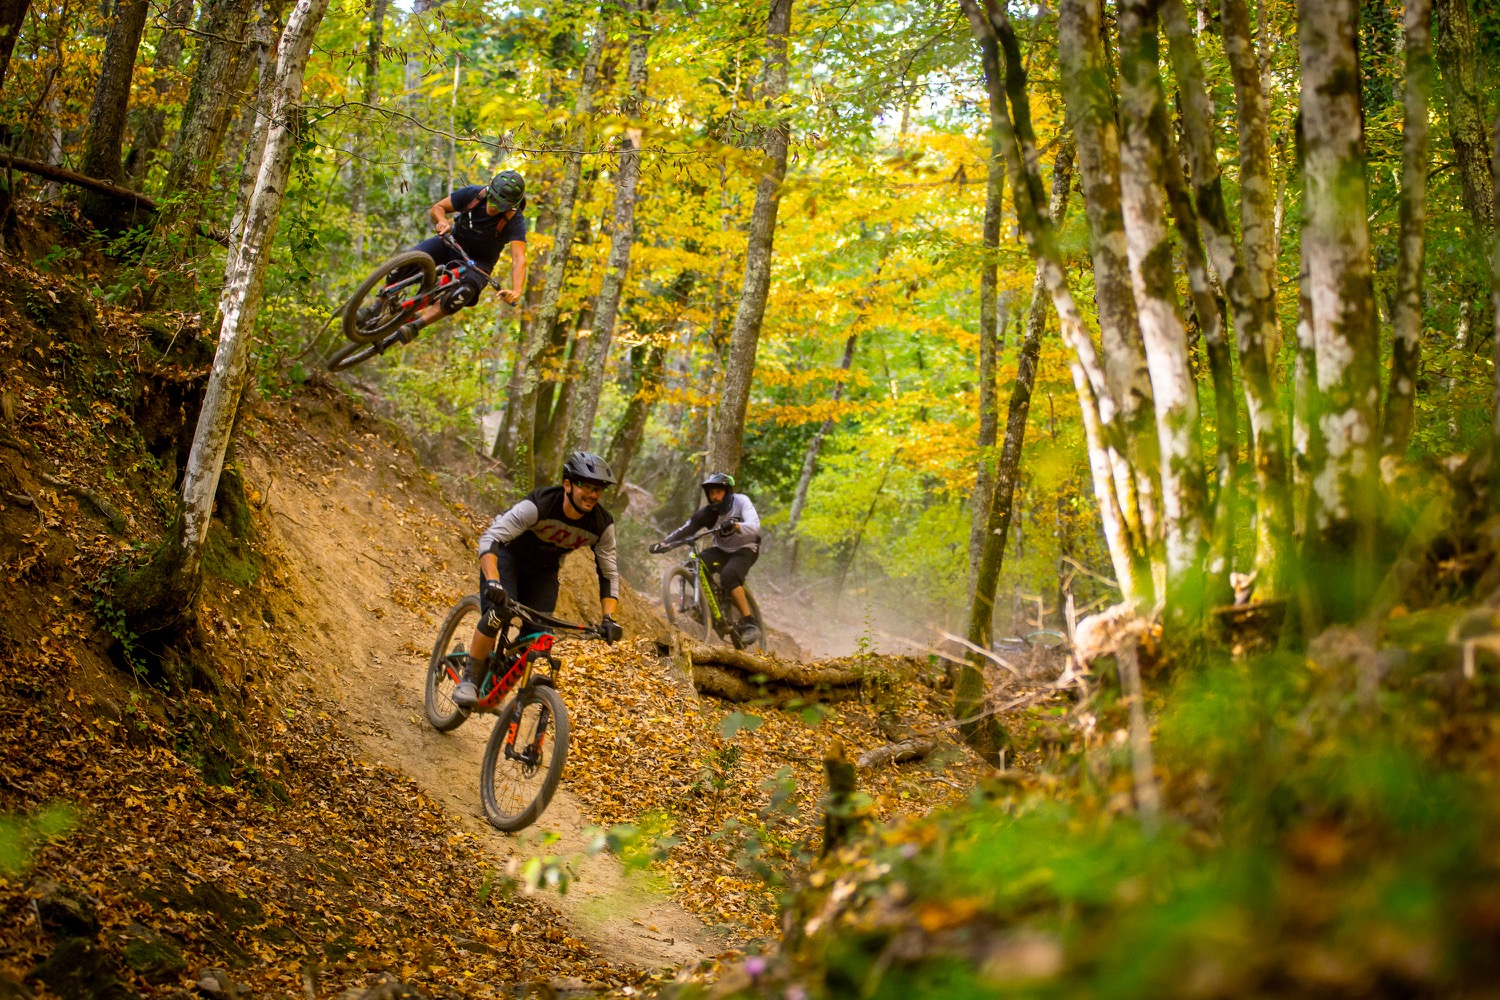 Trail Brothers Tuscany: Building Trails, Guiding Riders on Epic Singletrack Trails in Italy - Singletracks Mountain Bike News